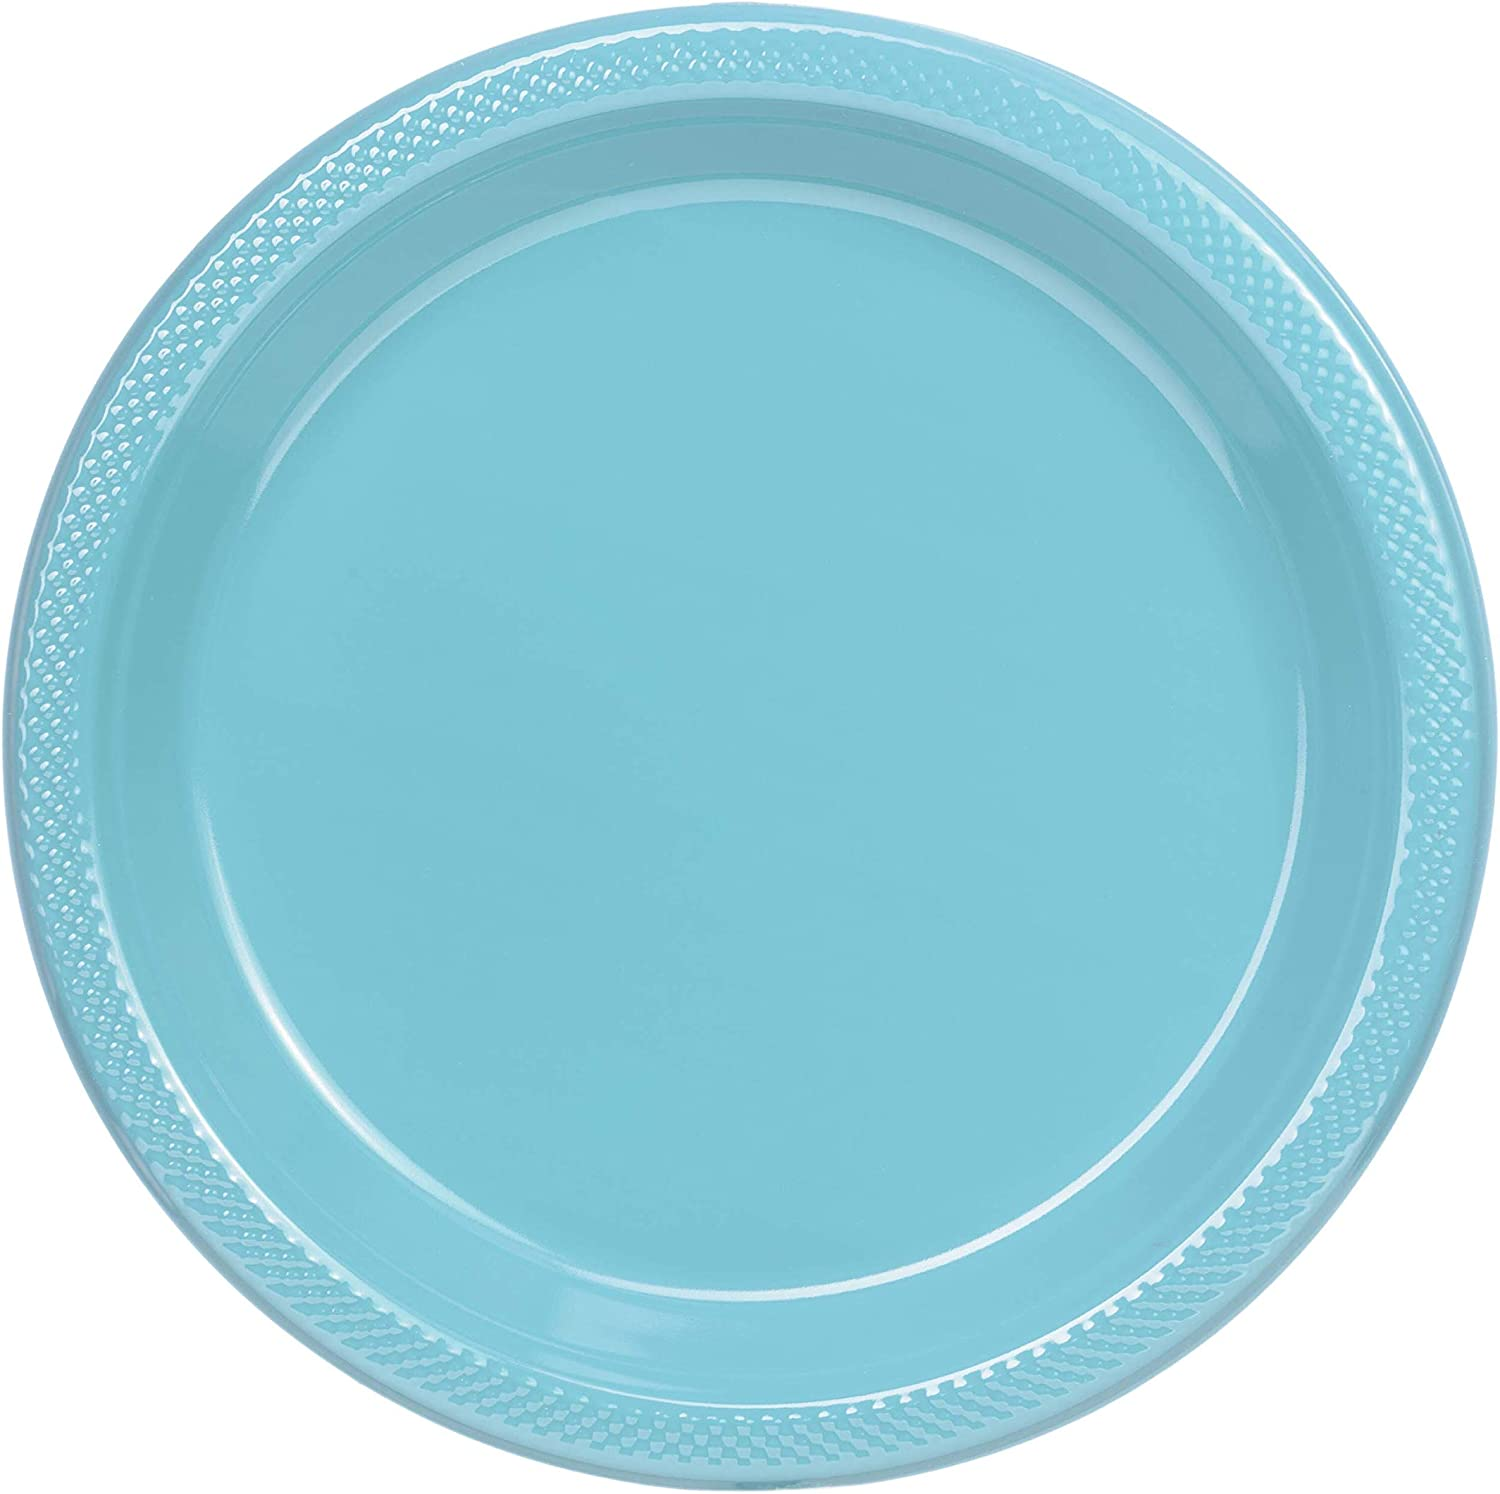 Exquisite 7 Inch. Light Blue Plastic Dessert/Salad Plates - Solid Color Disposable Plates - 50 Count